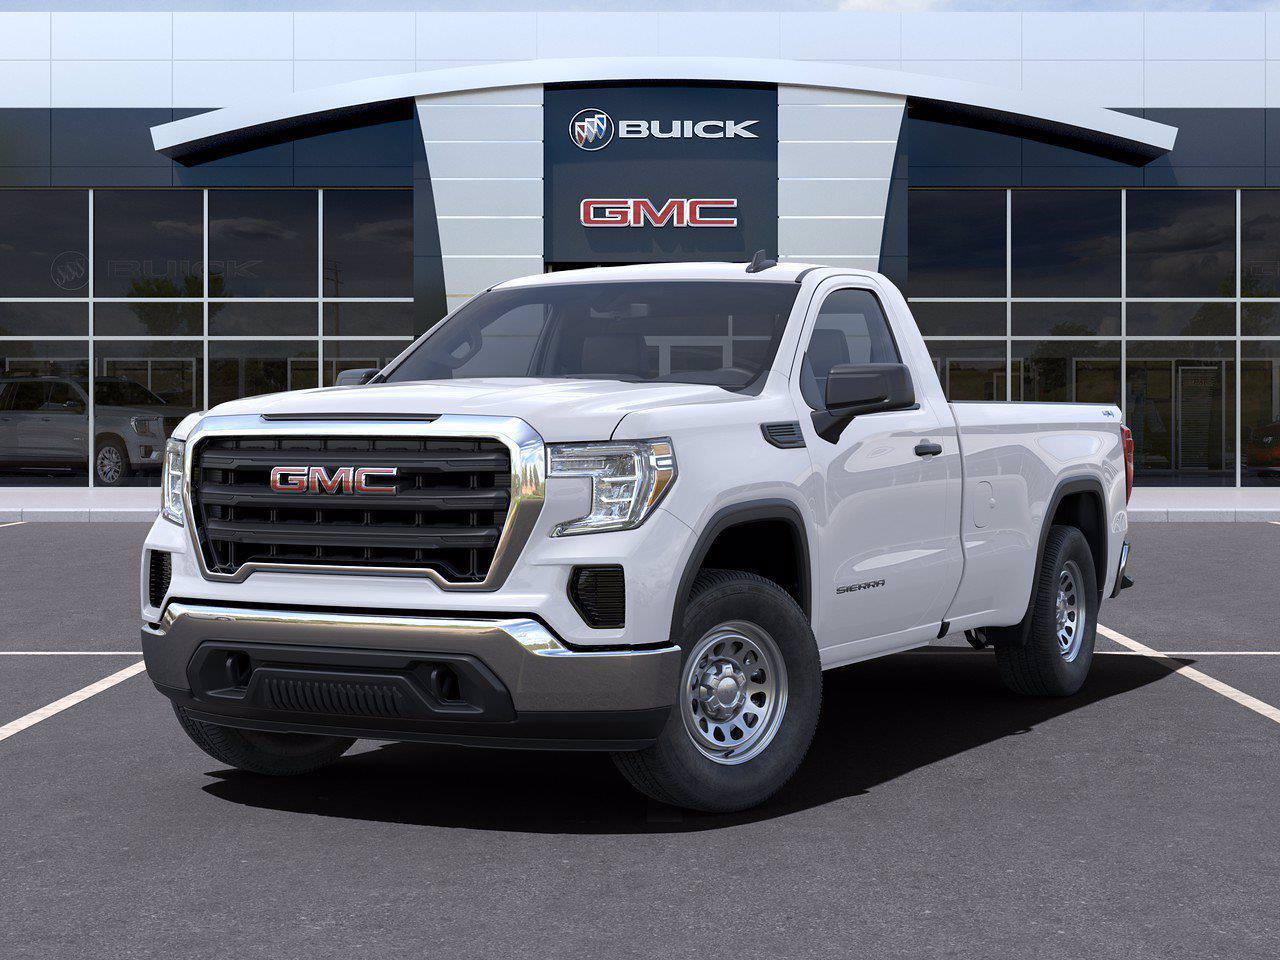 2021 GMC Sierra 1500 Regular Cab 4x4, Pickup #416065 - photo 6